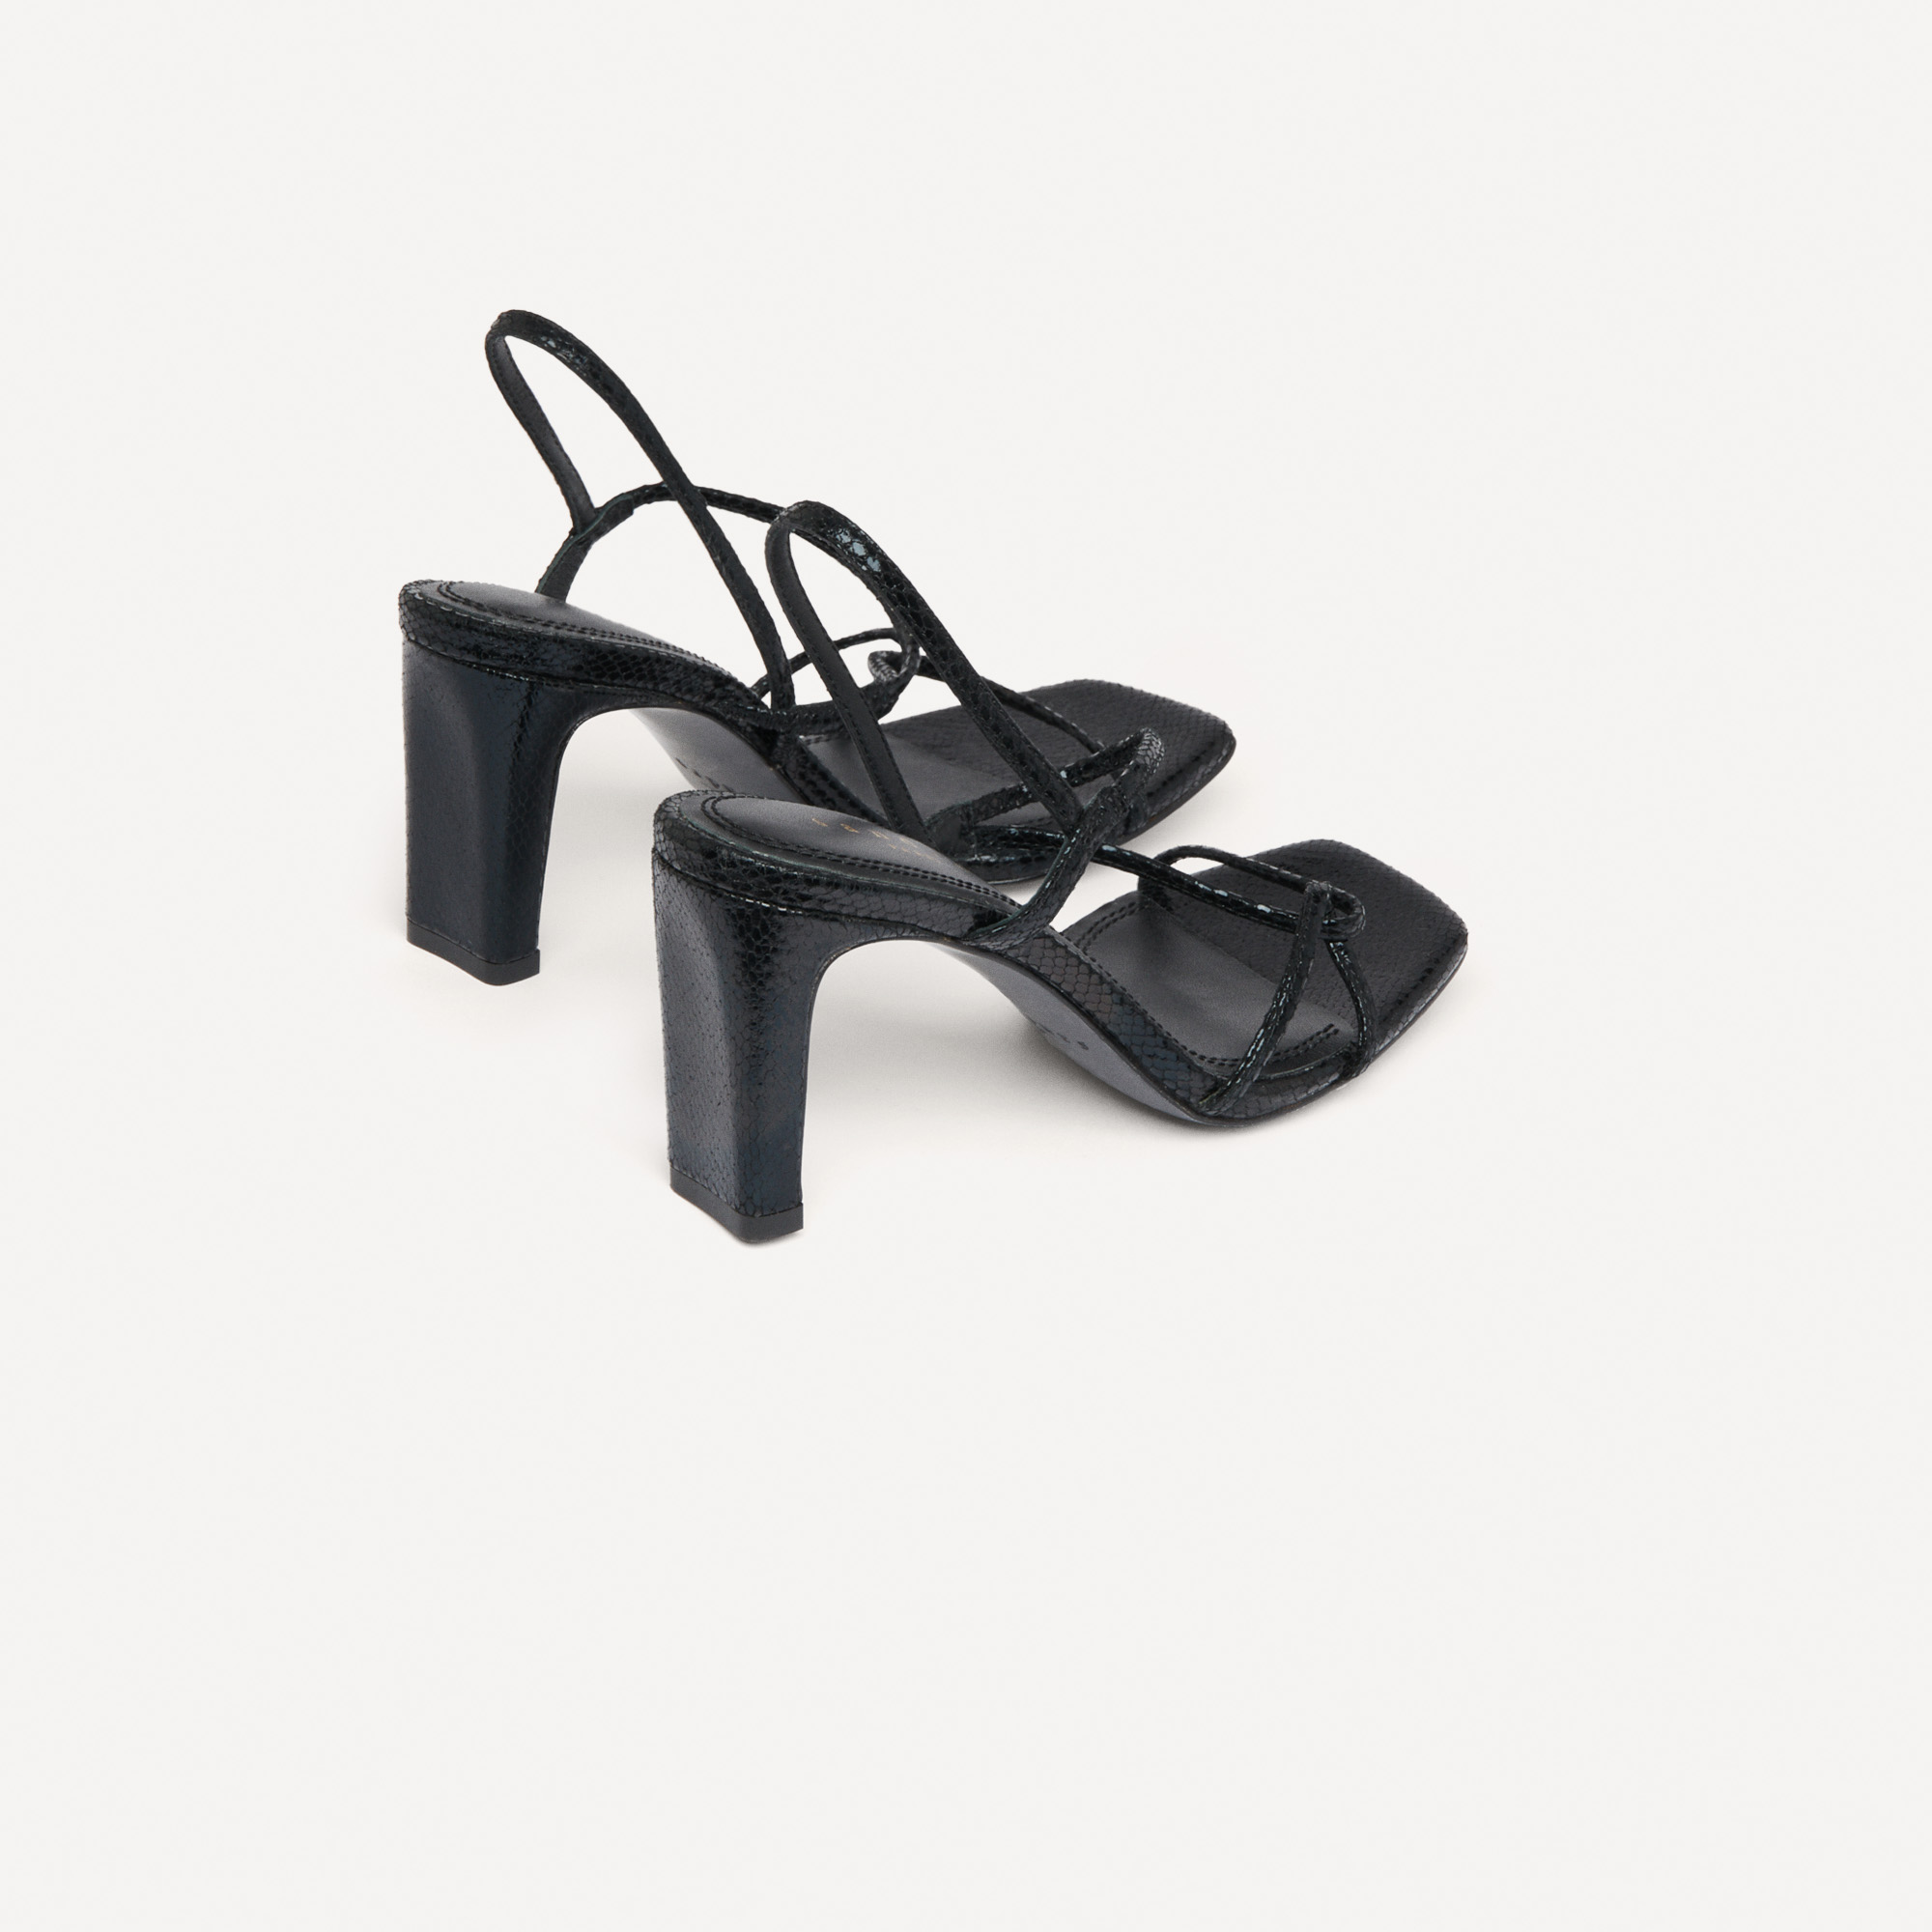 Sandals with narrow straps - Black